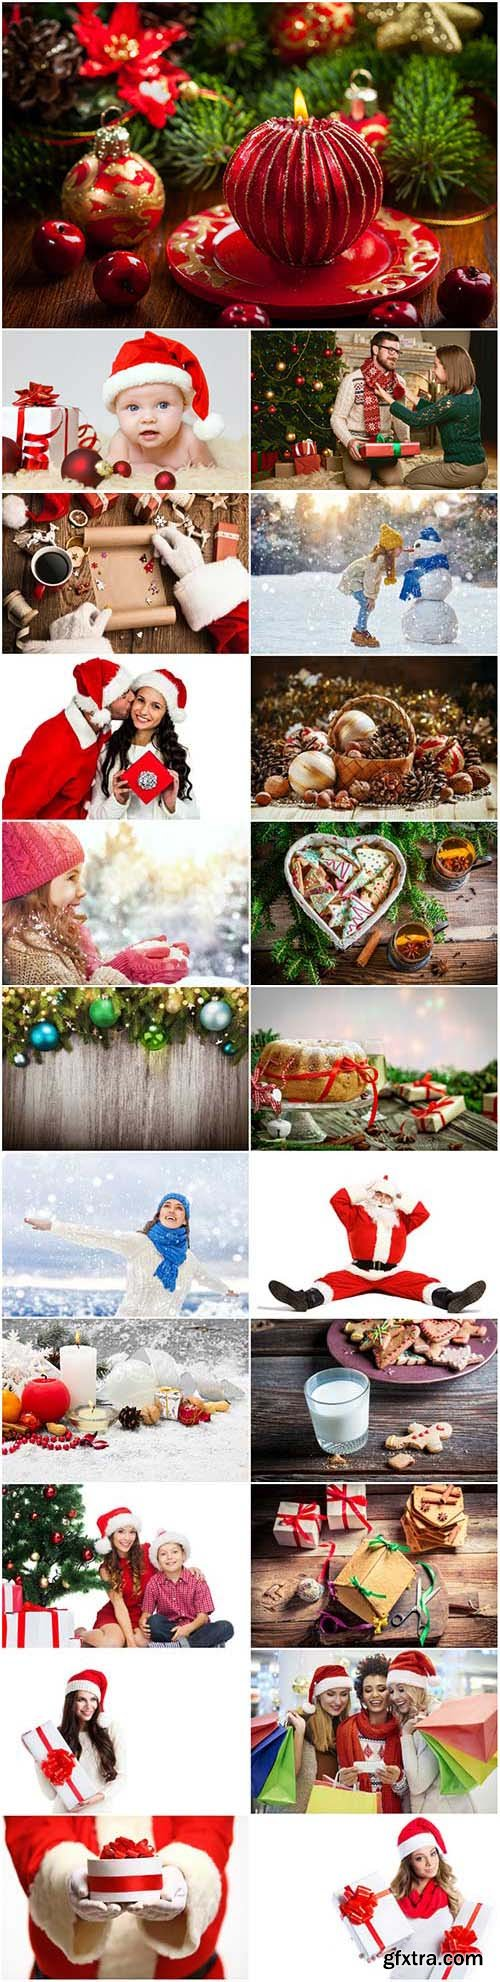 New Year and Christmas stock photos 95